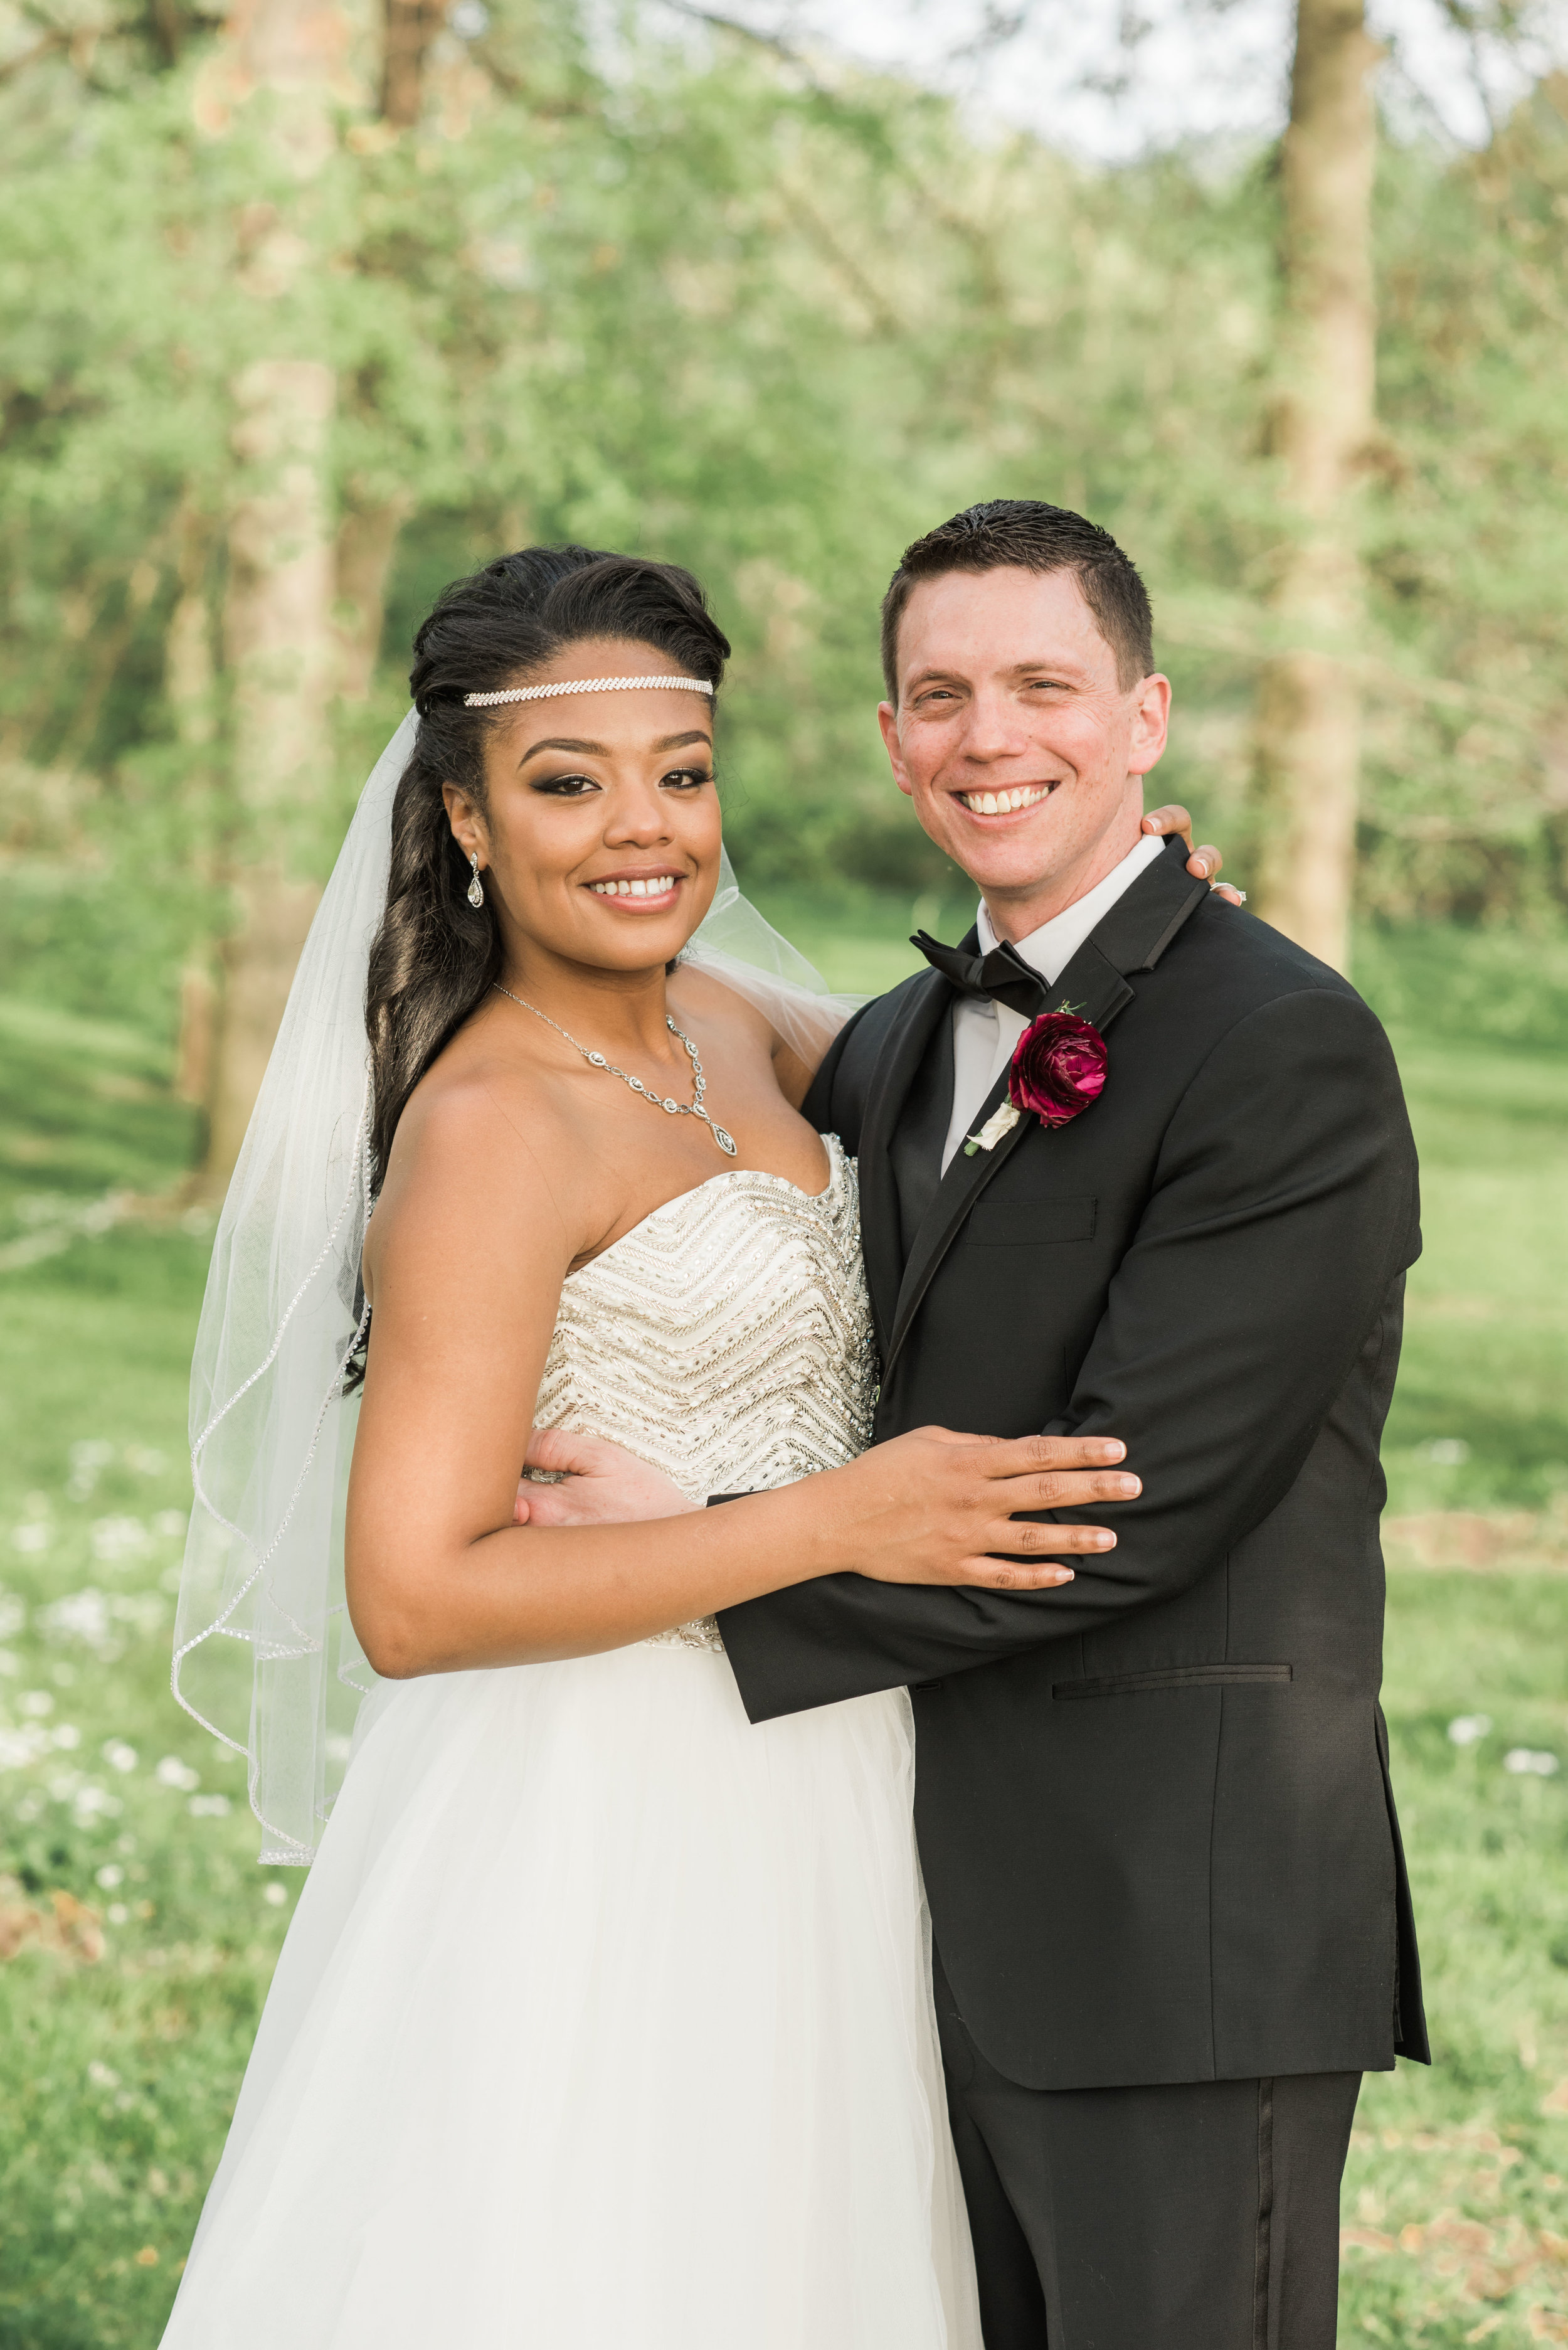 bride and groom, just married, bridal portrait, african american bride and white groom, mixed race bride and groom, bride and groom poses, good looking bride and groom